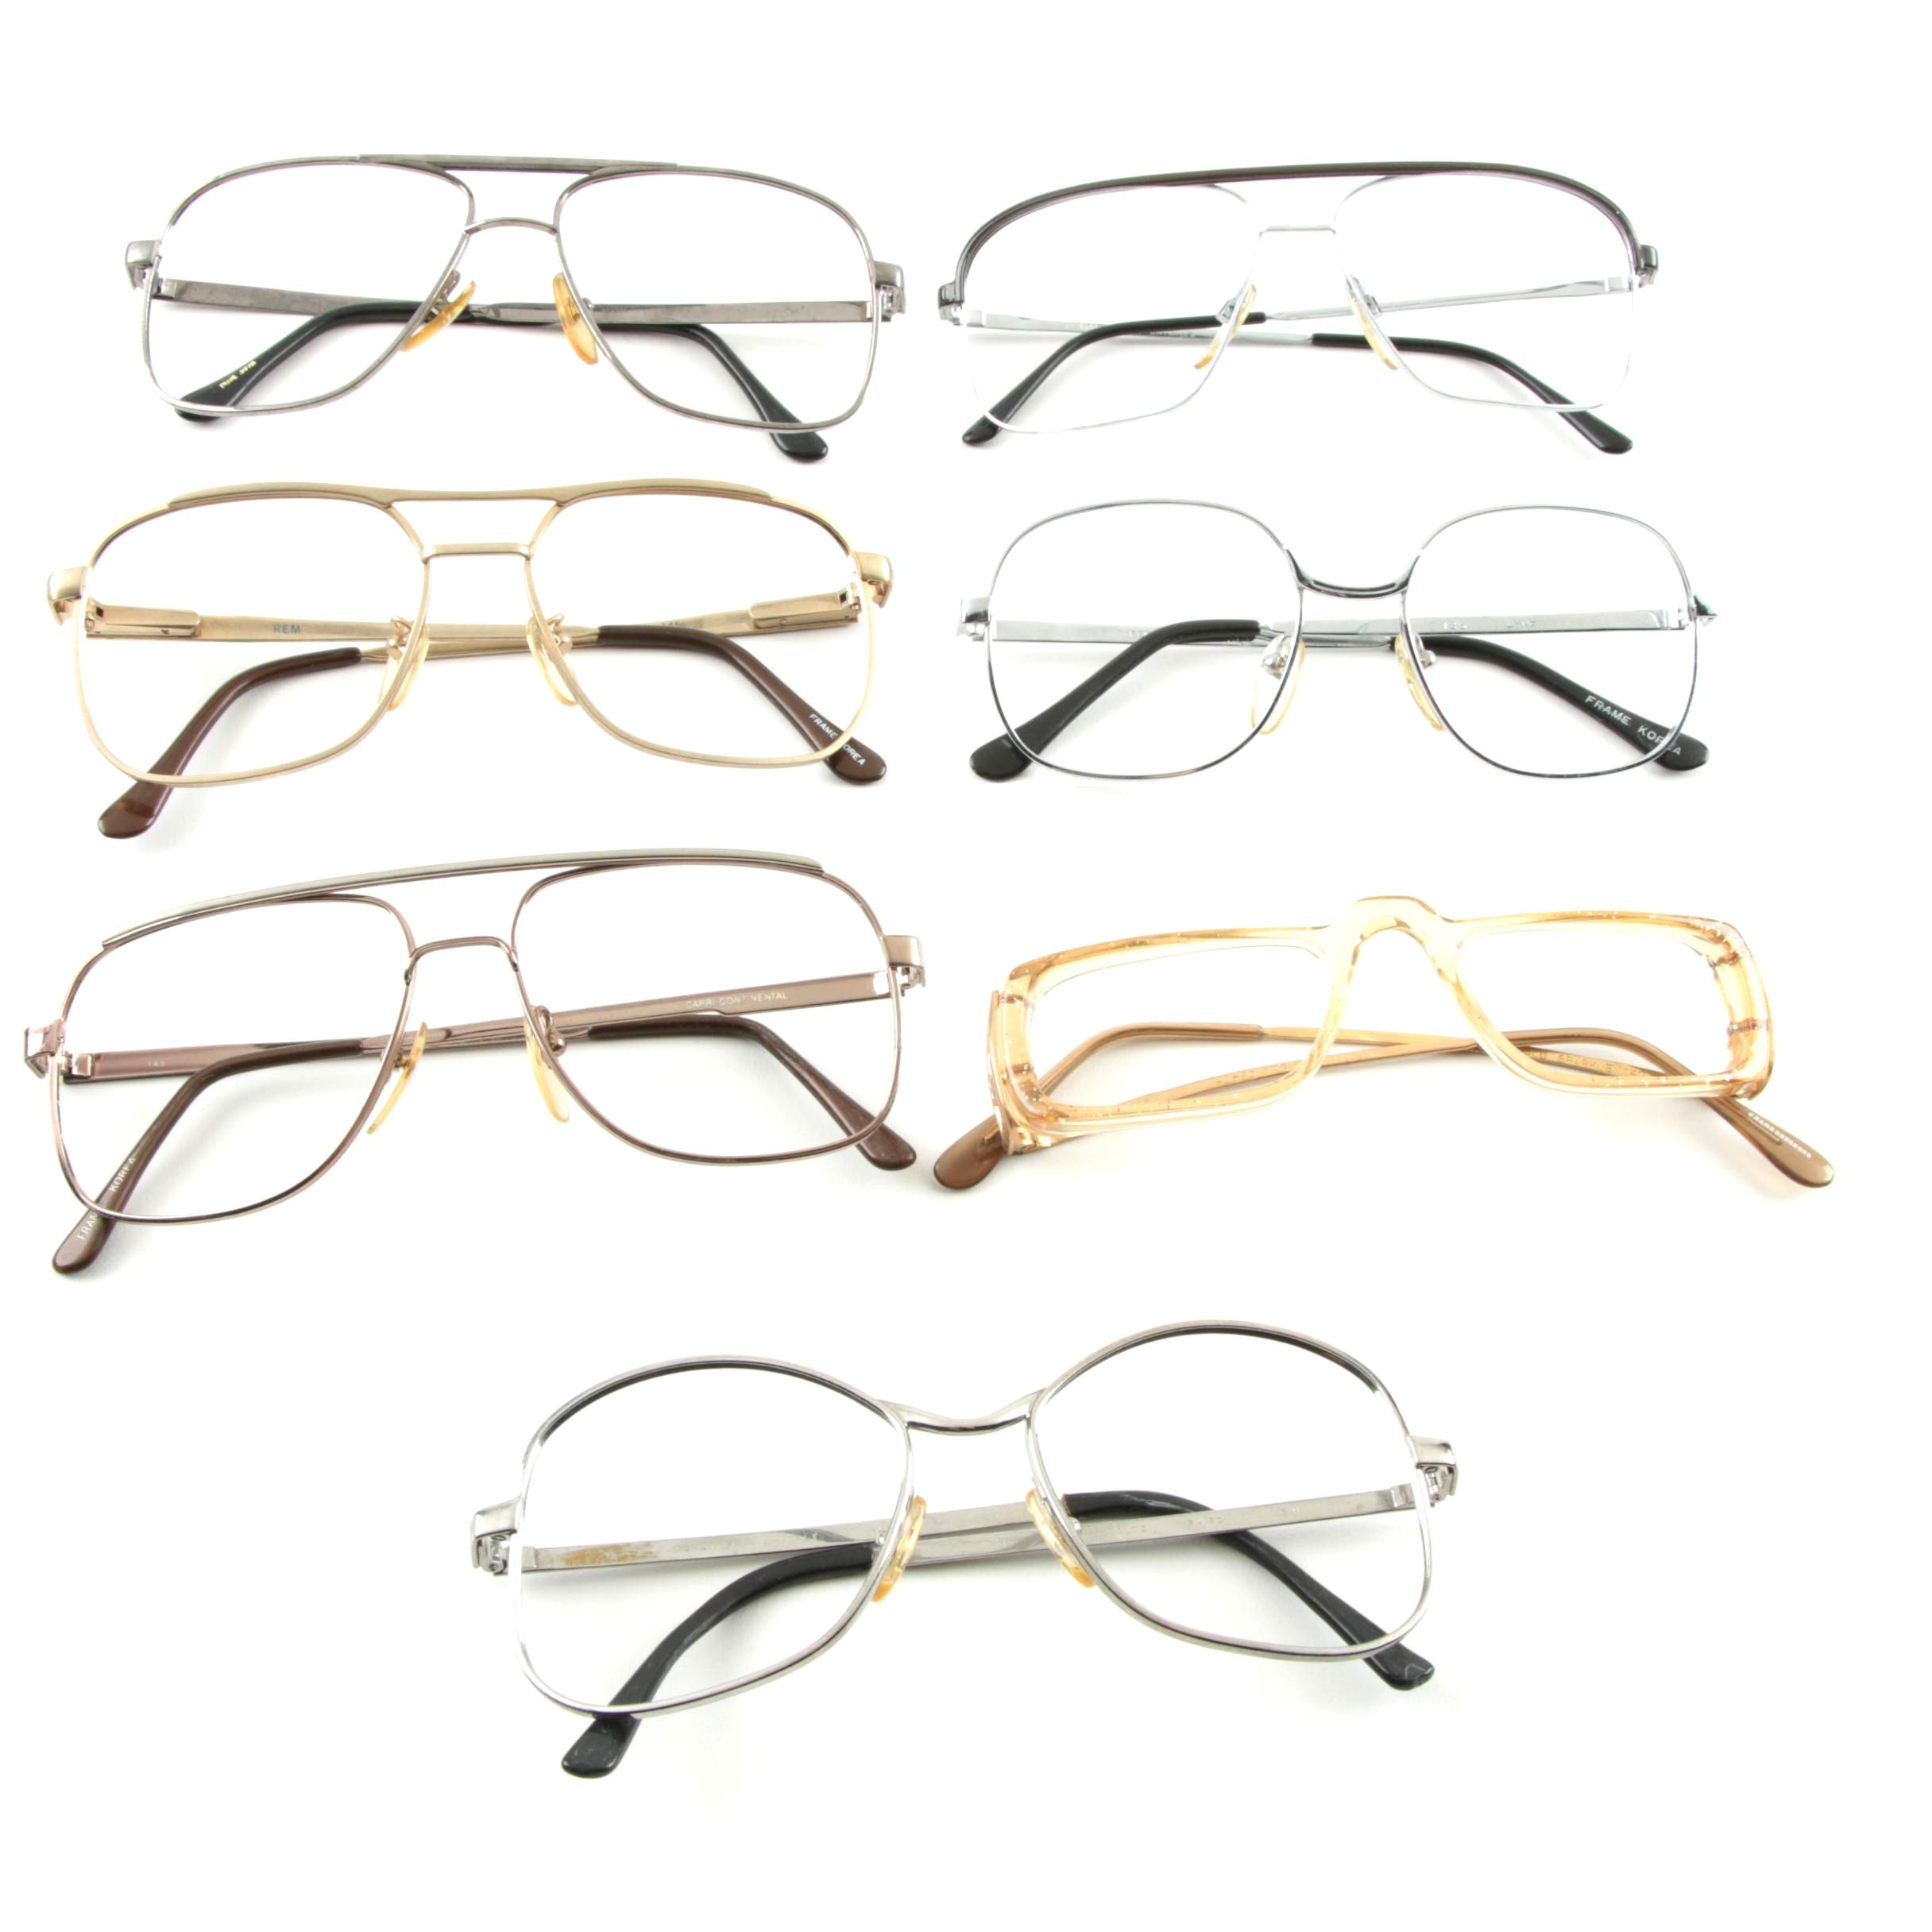 Vintage Eyeglasses, Including Aviators